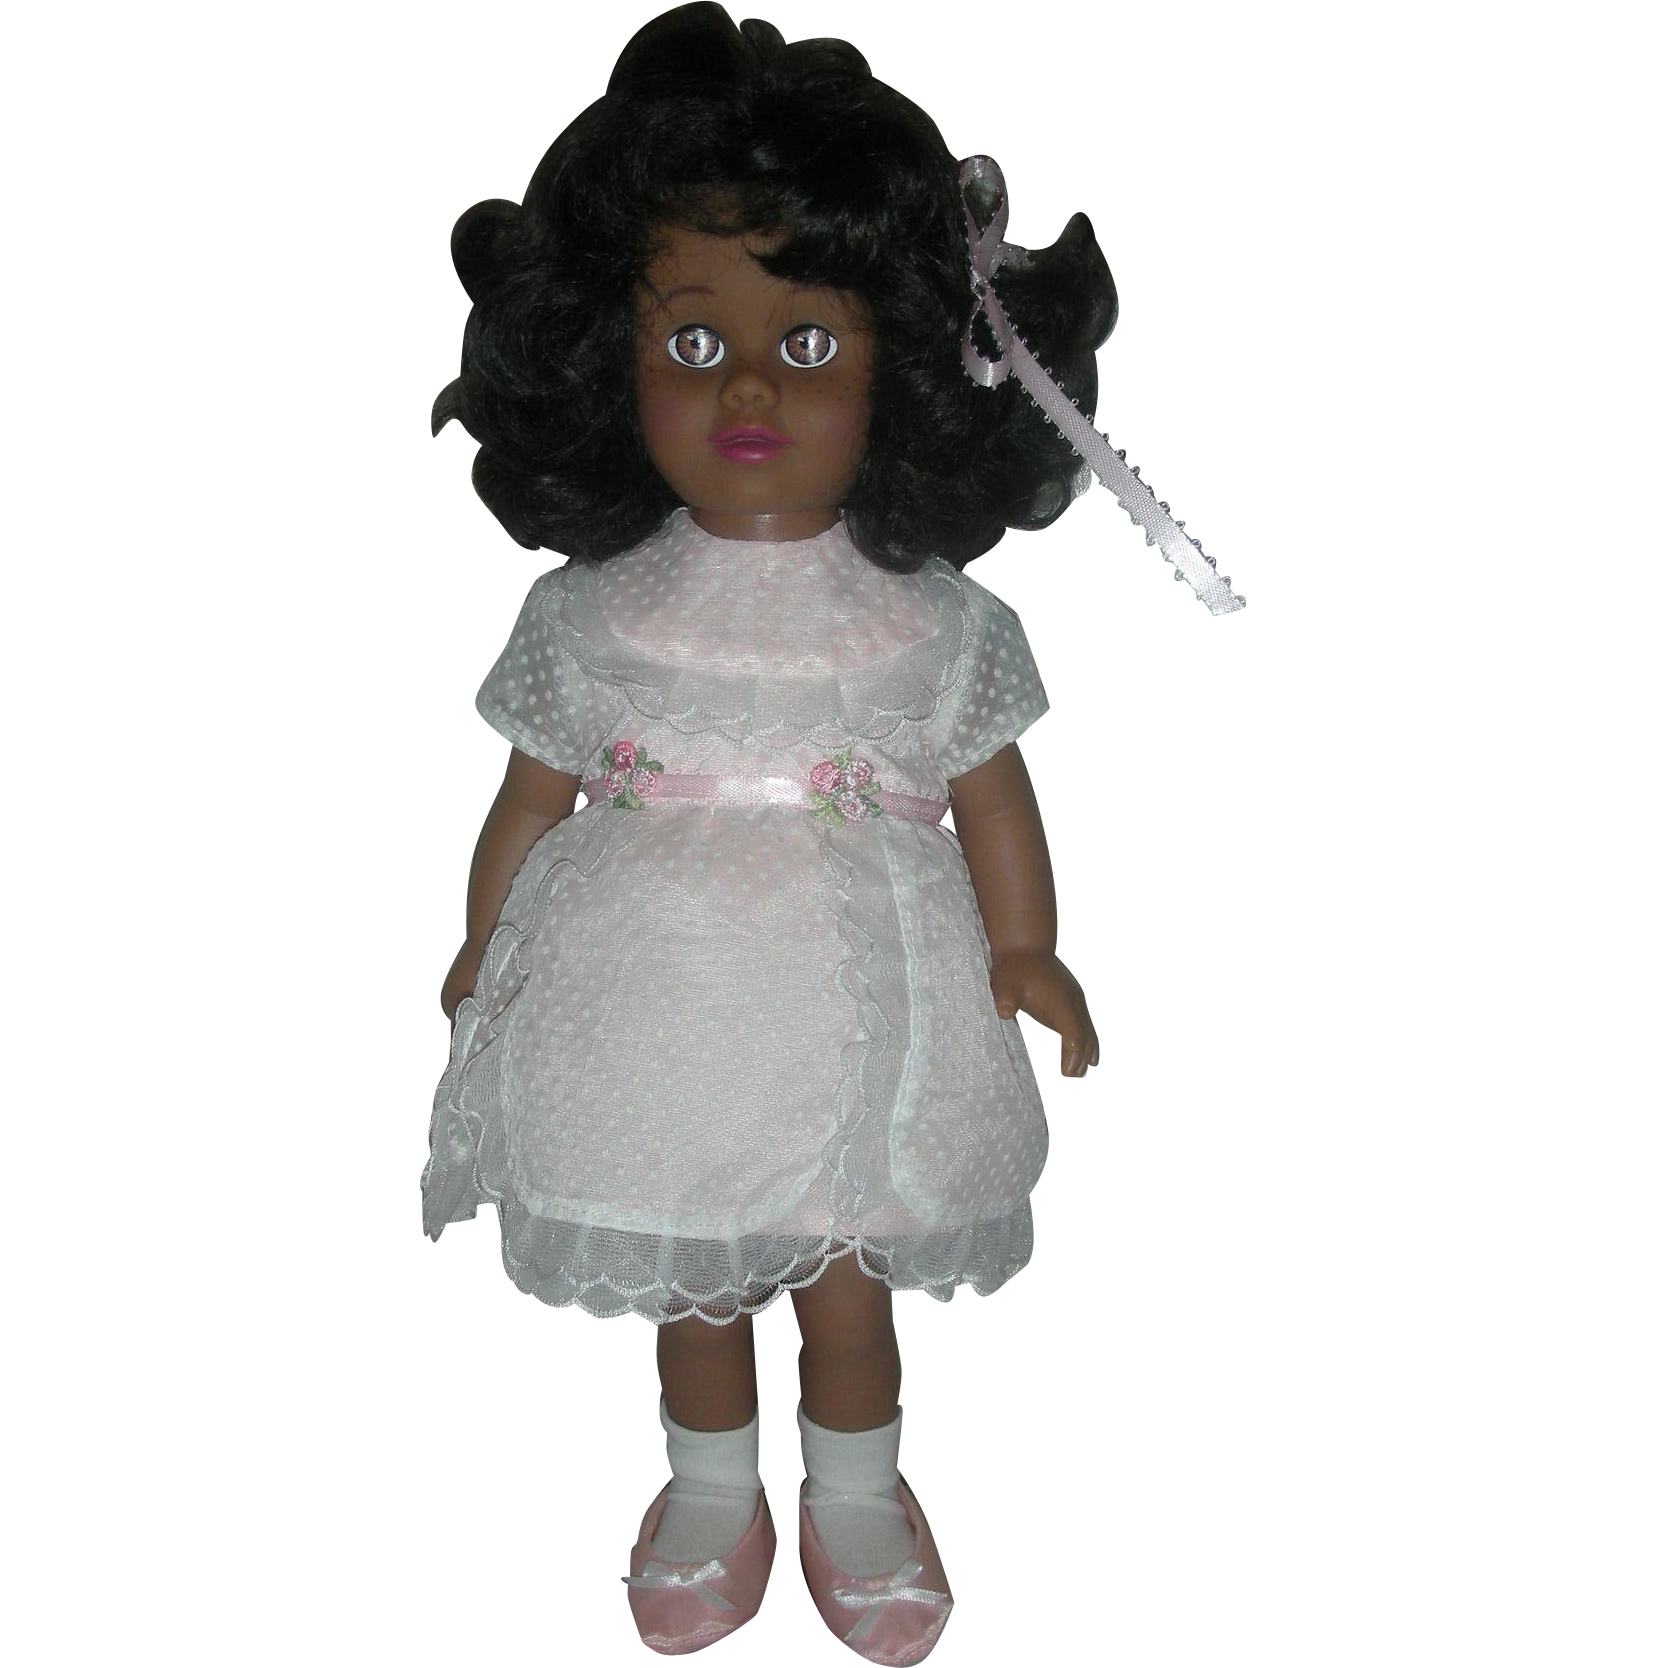 Mattel Black Chatty Cathy Doll Still Talks Wearing Sunday Party Dress